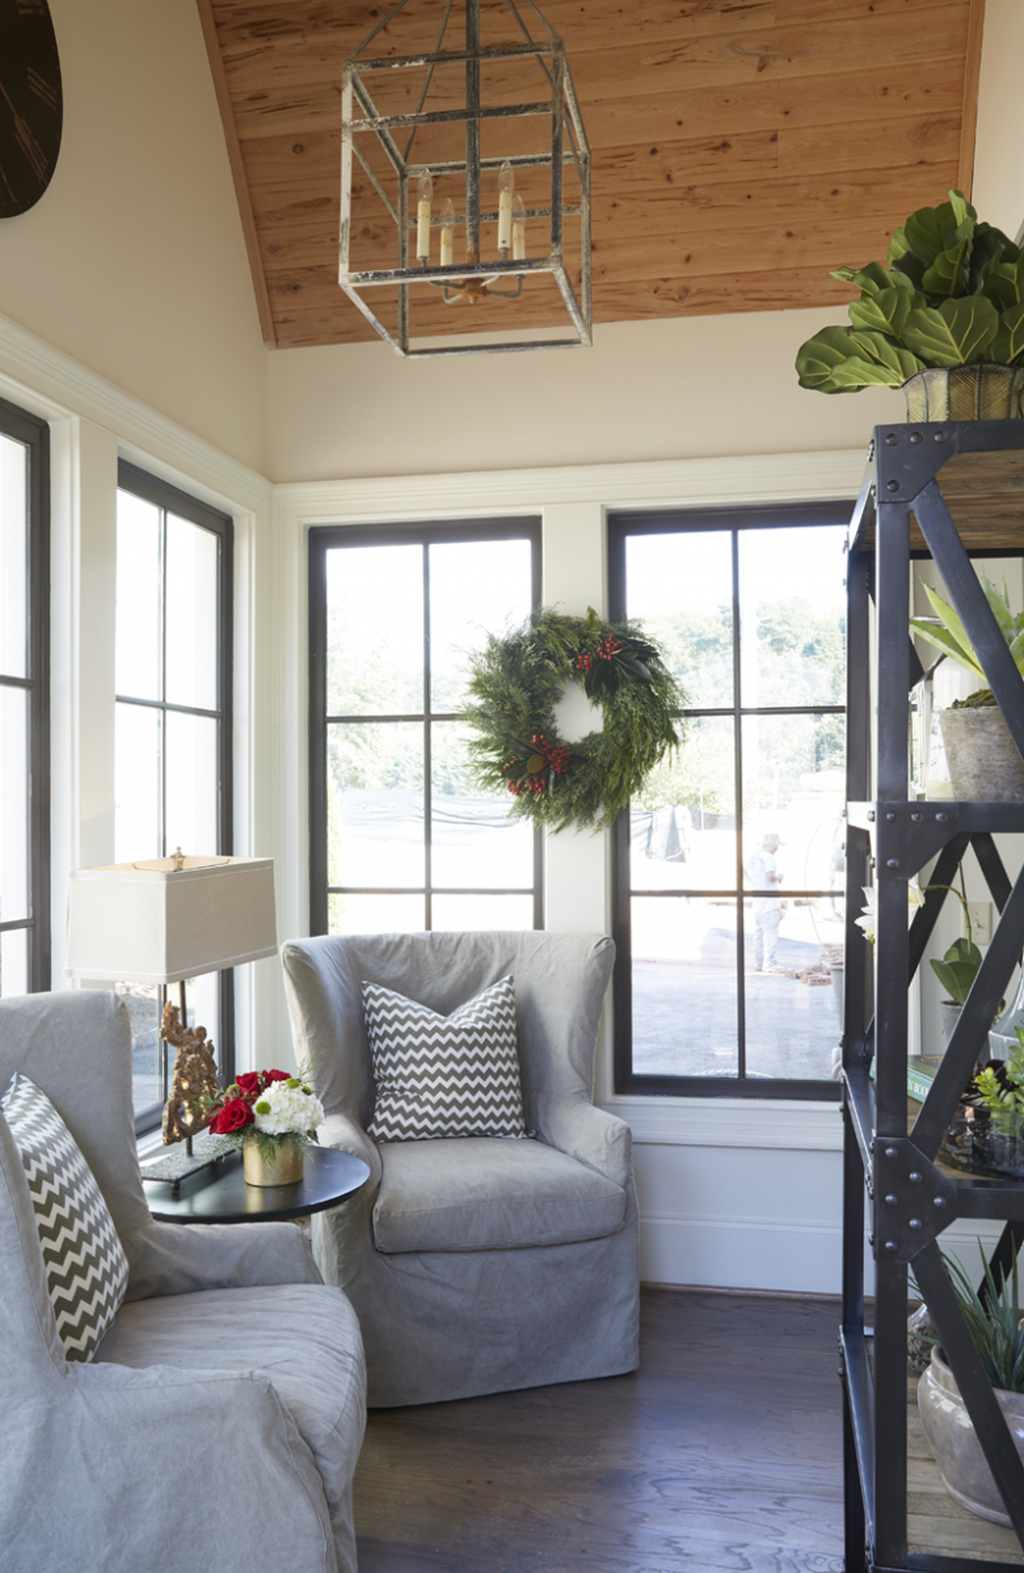 30 Inspiring Sunroom Design Ideas On A Budget With Images